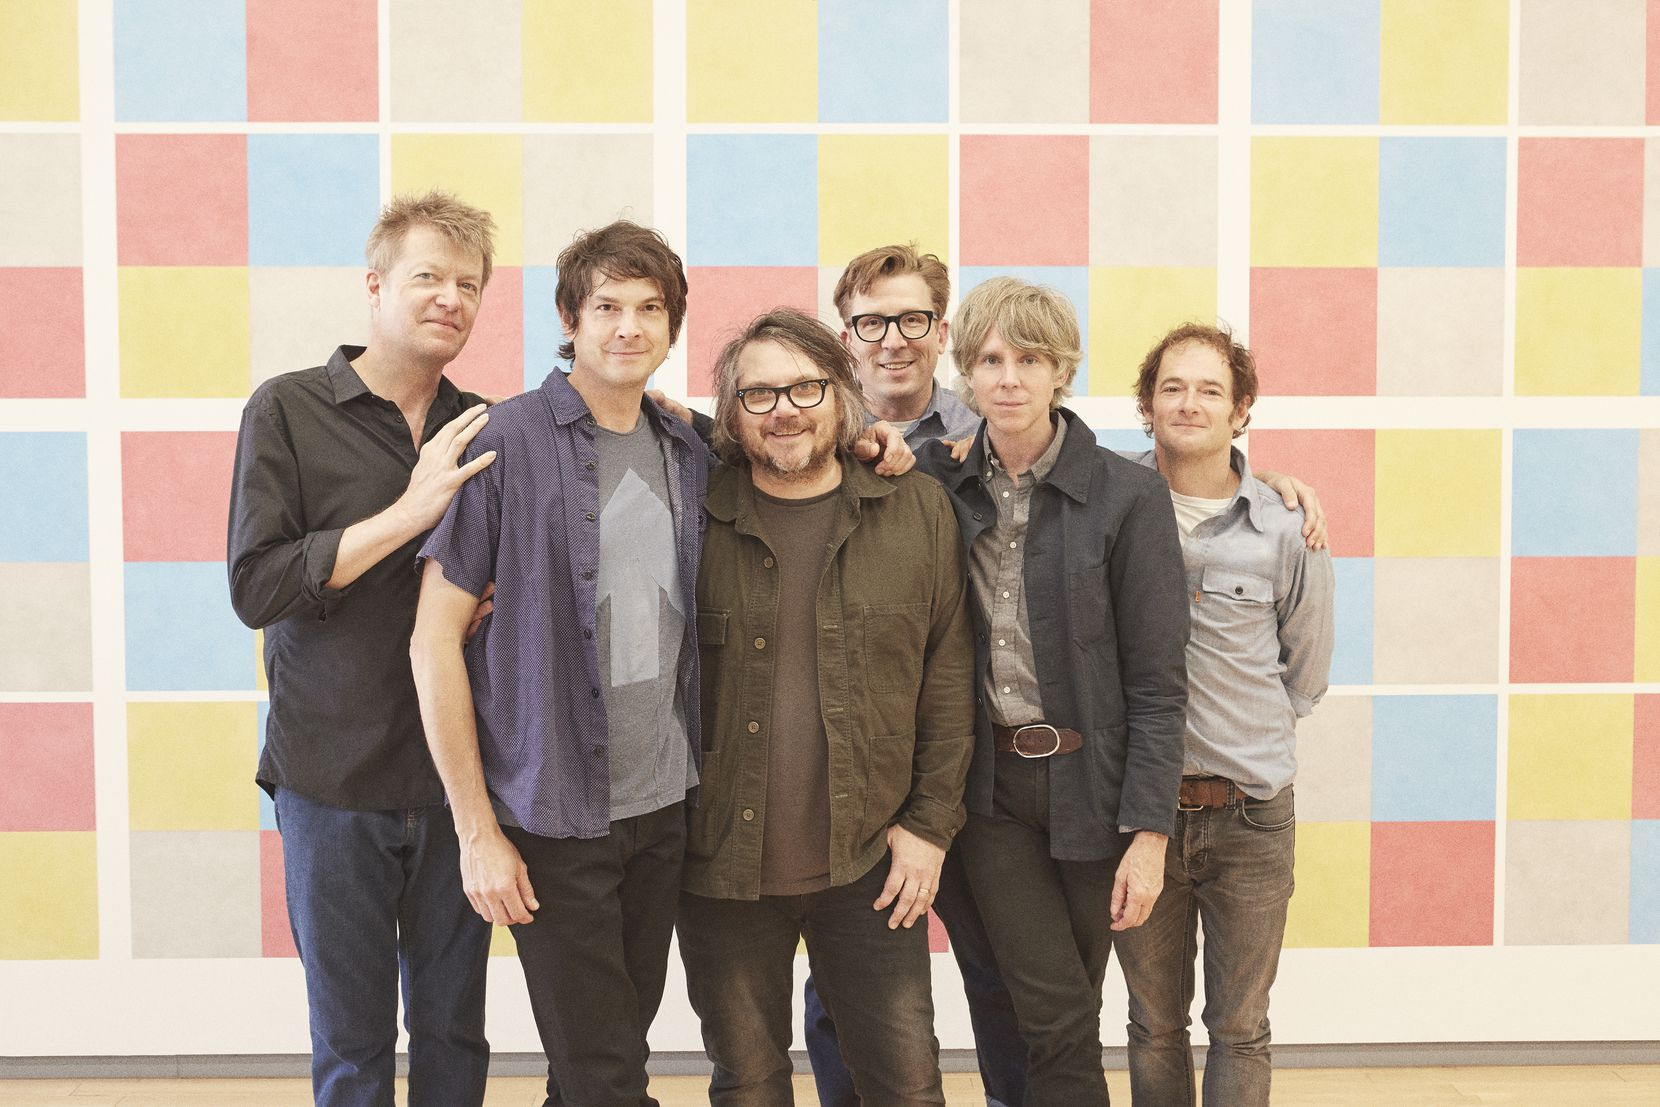 Jeff Tweedy, third from left, poses with members of the band Wilco.